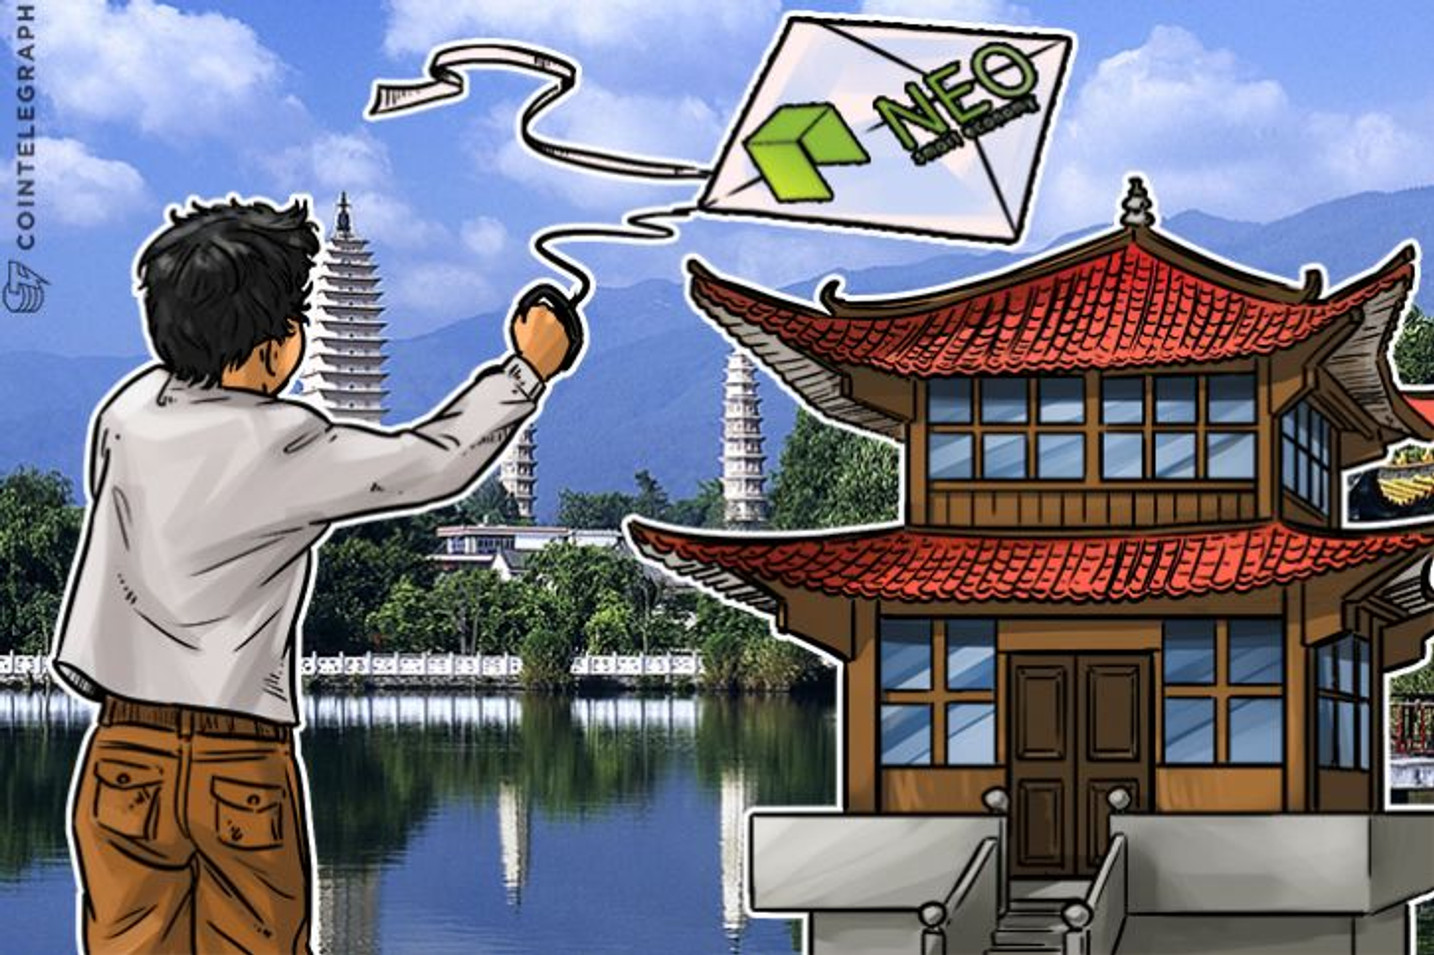 China's Leading Exchange Distributing GAS to Those with NEO